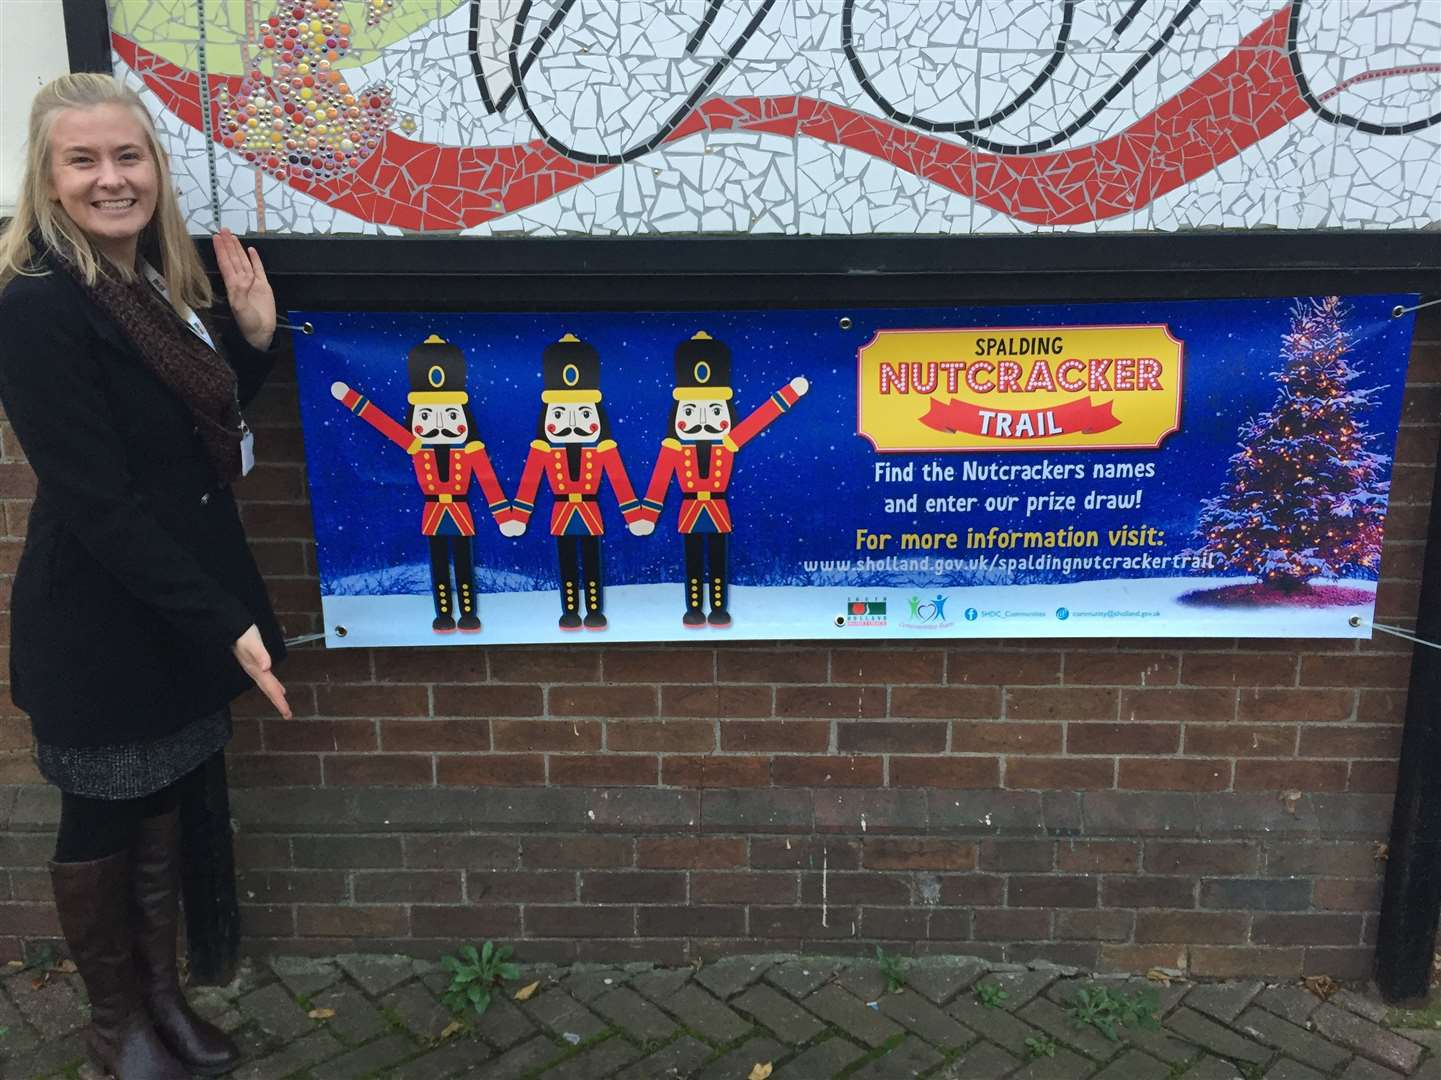 Introducing the Nutcracker Trail ... communities officer Jessica Horn